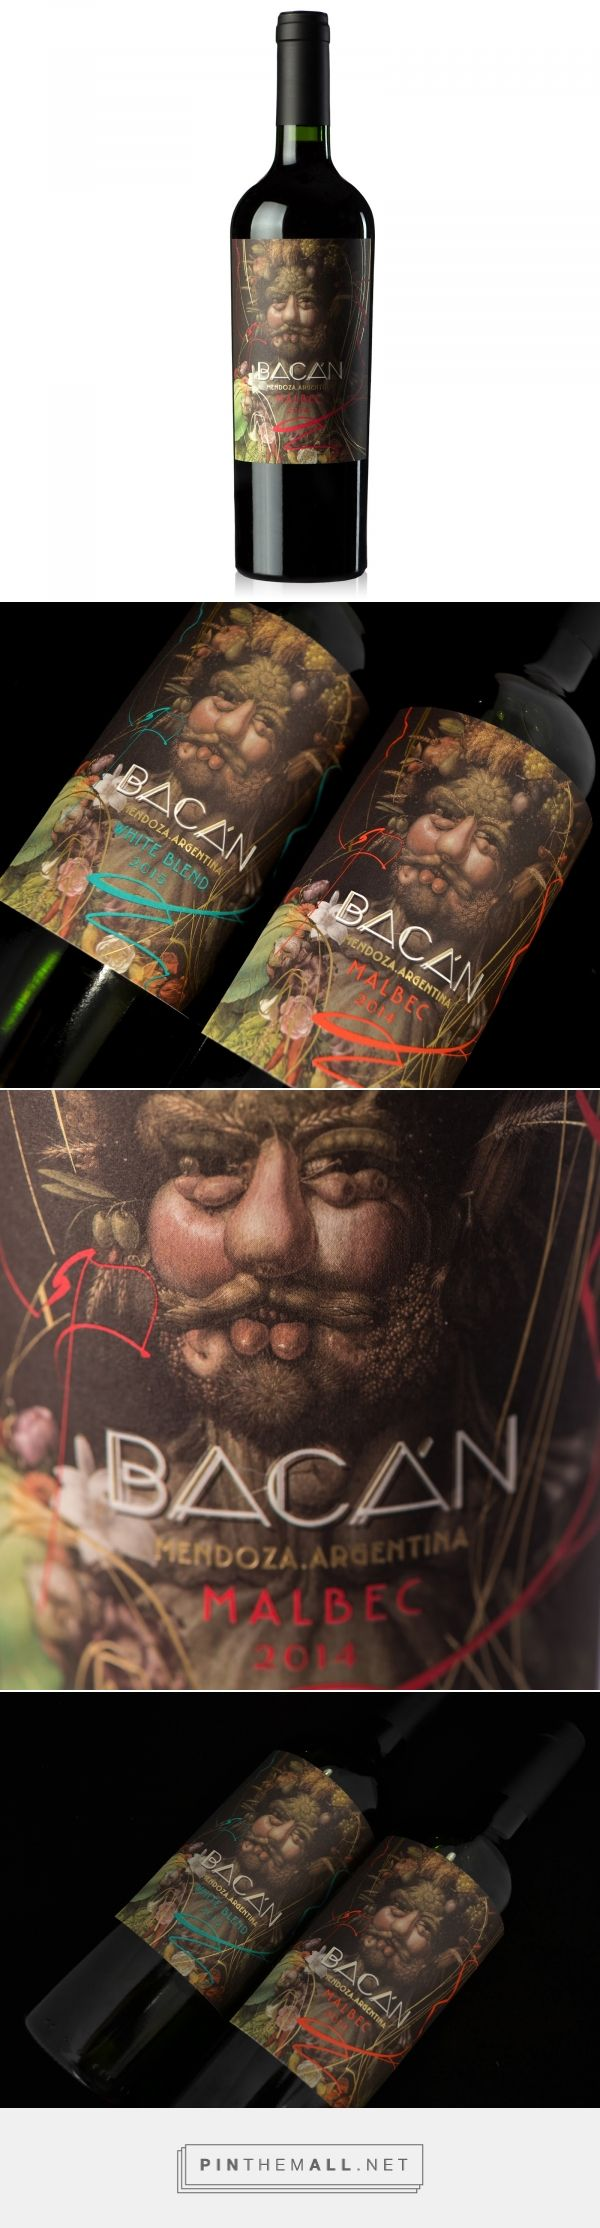 Bacán wine packaging design by Dizen - http://www.packagingoftheworld.com/2017/10/bacan.html